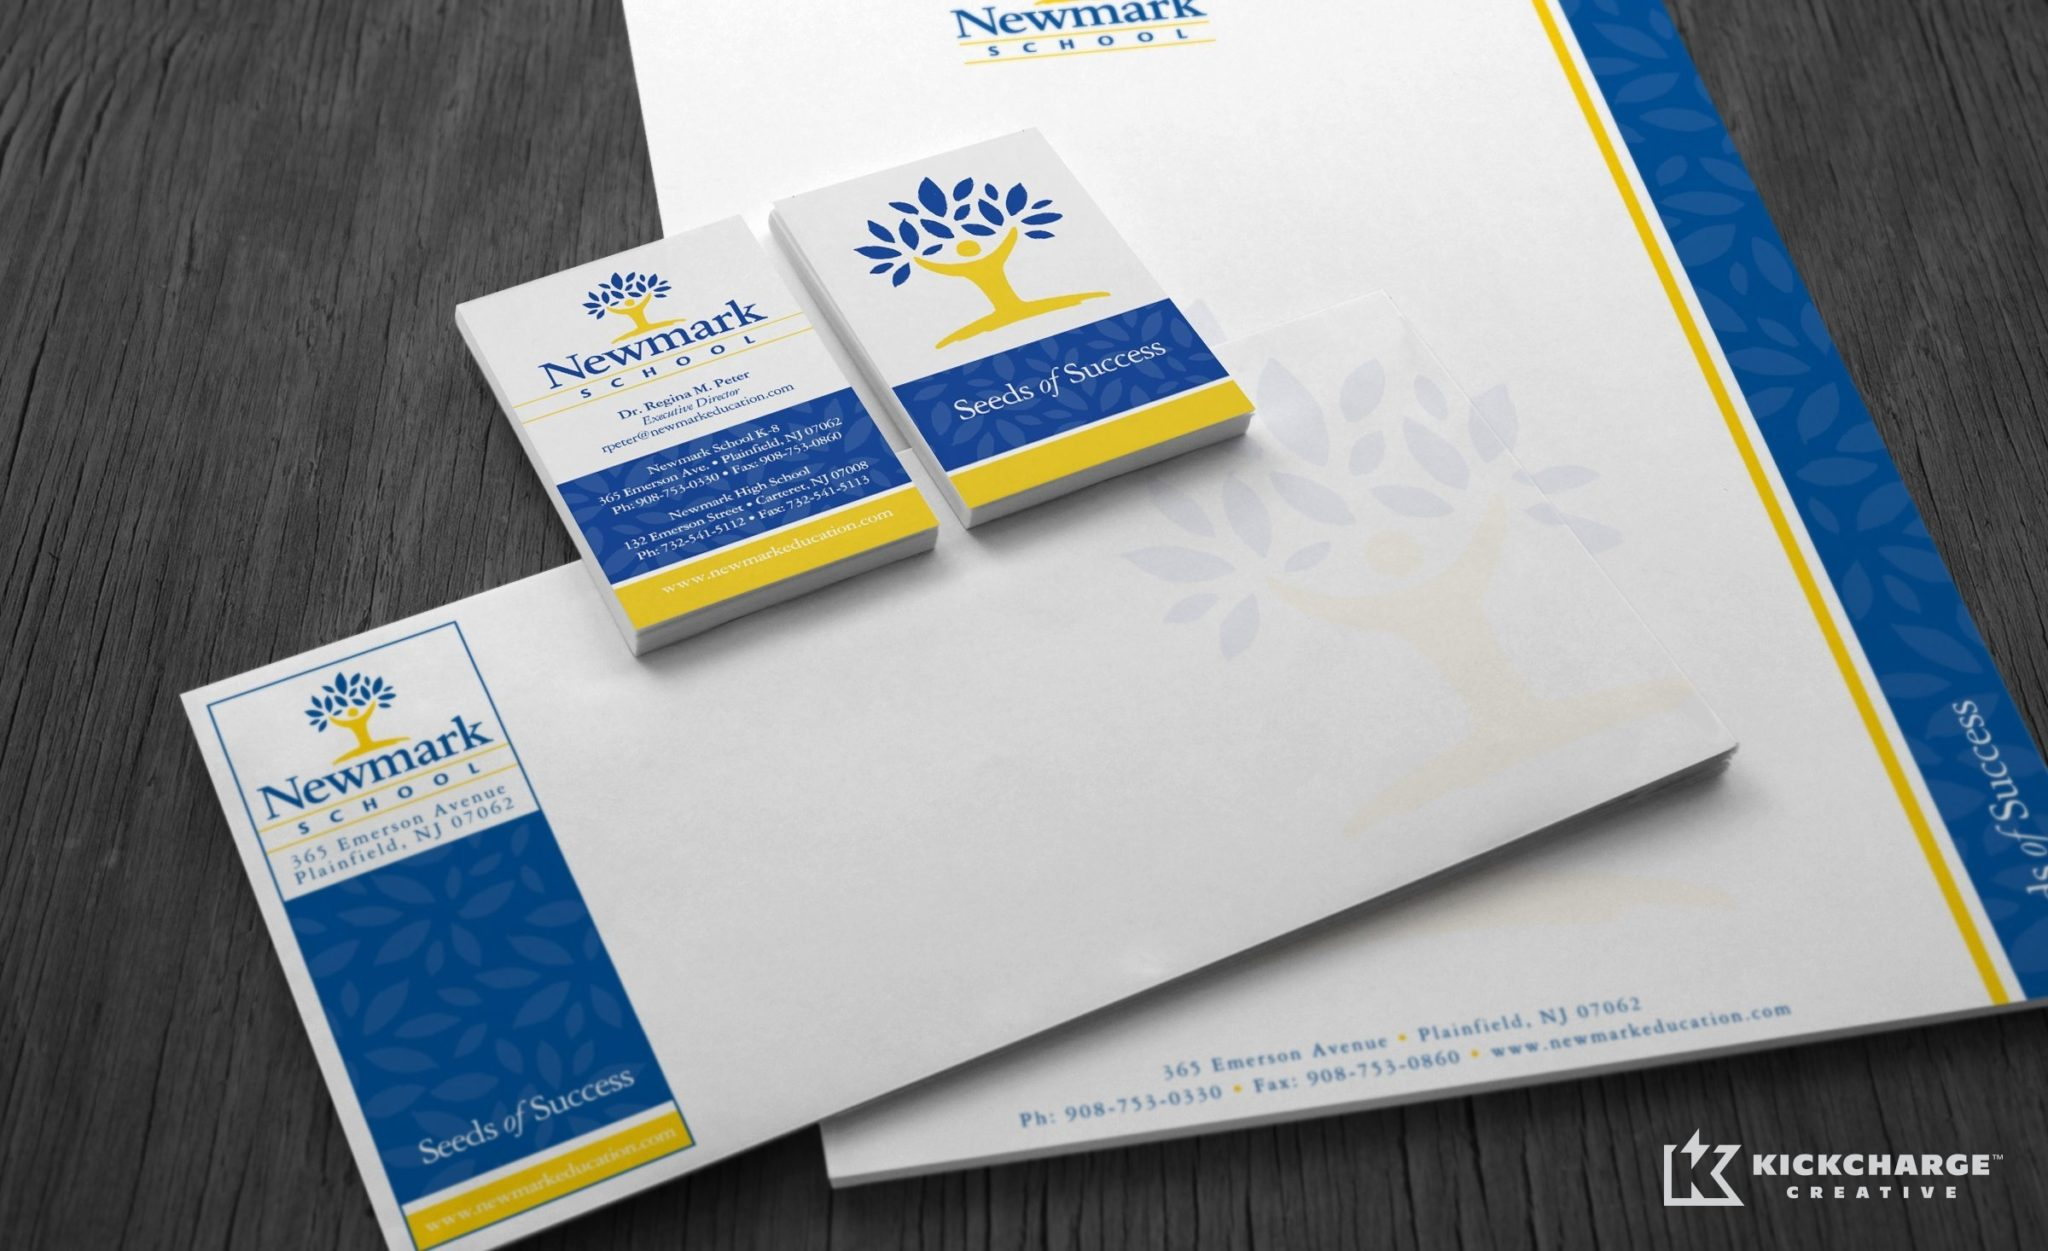 Stationery design for Newmark Schools.